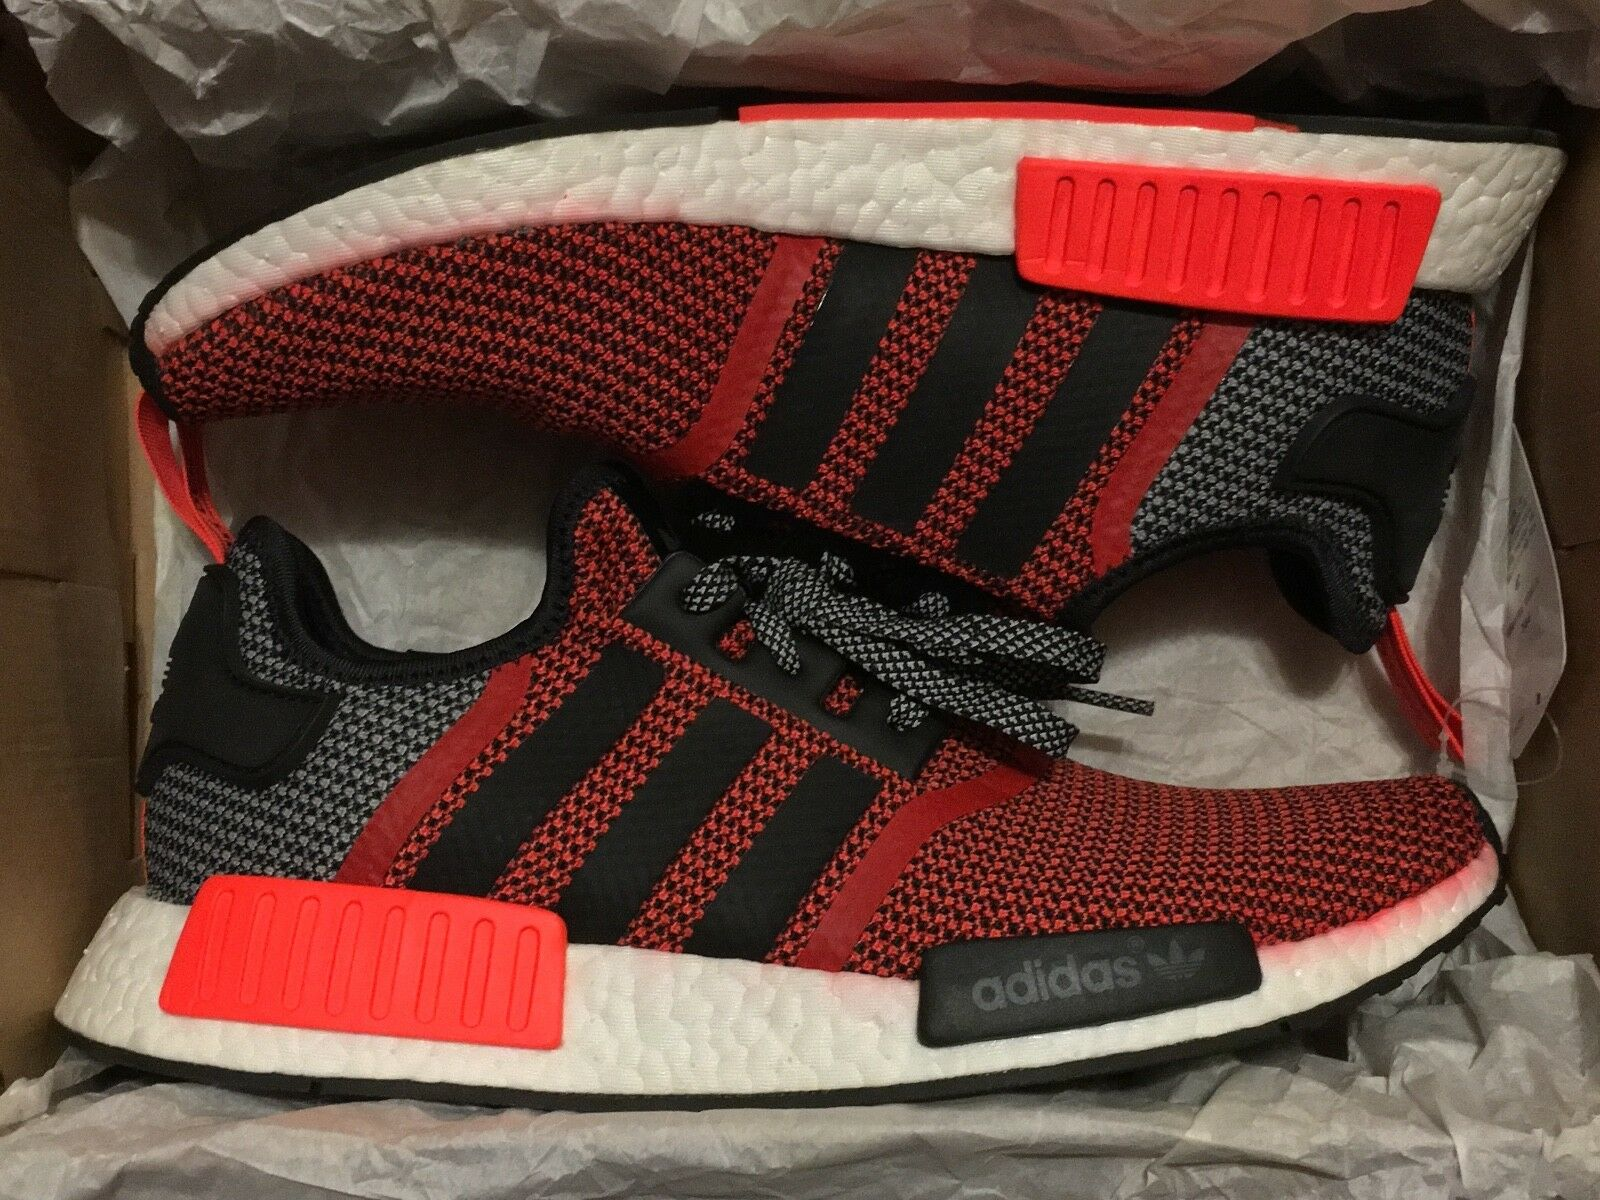 ADIDAS ORIGINALS NMD R1 CIRCA KNIT KNIT KNIT LUSH RED S79158 SIZE 10 3706cb